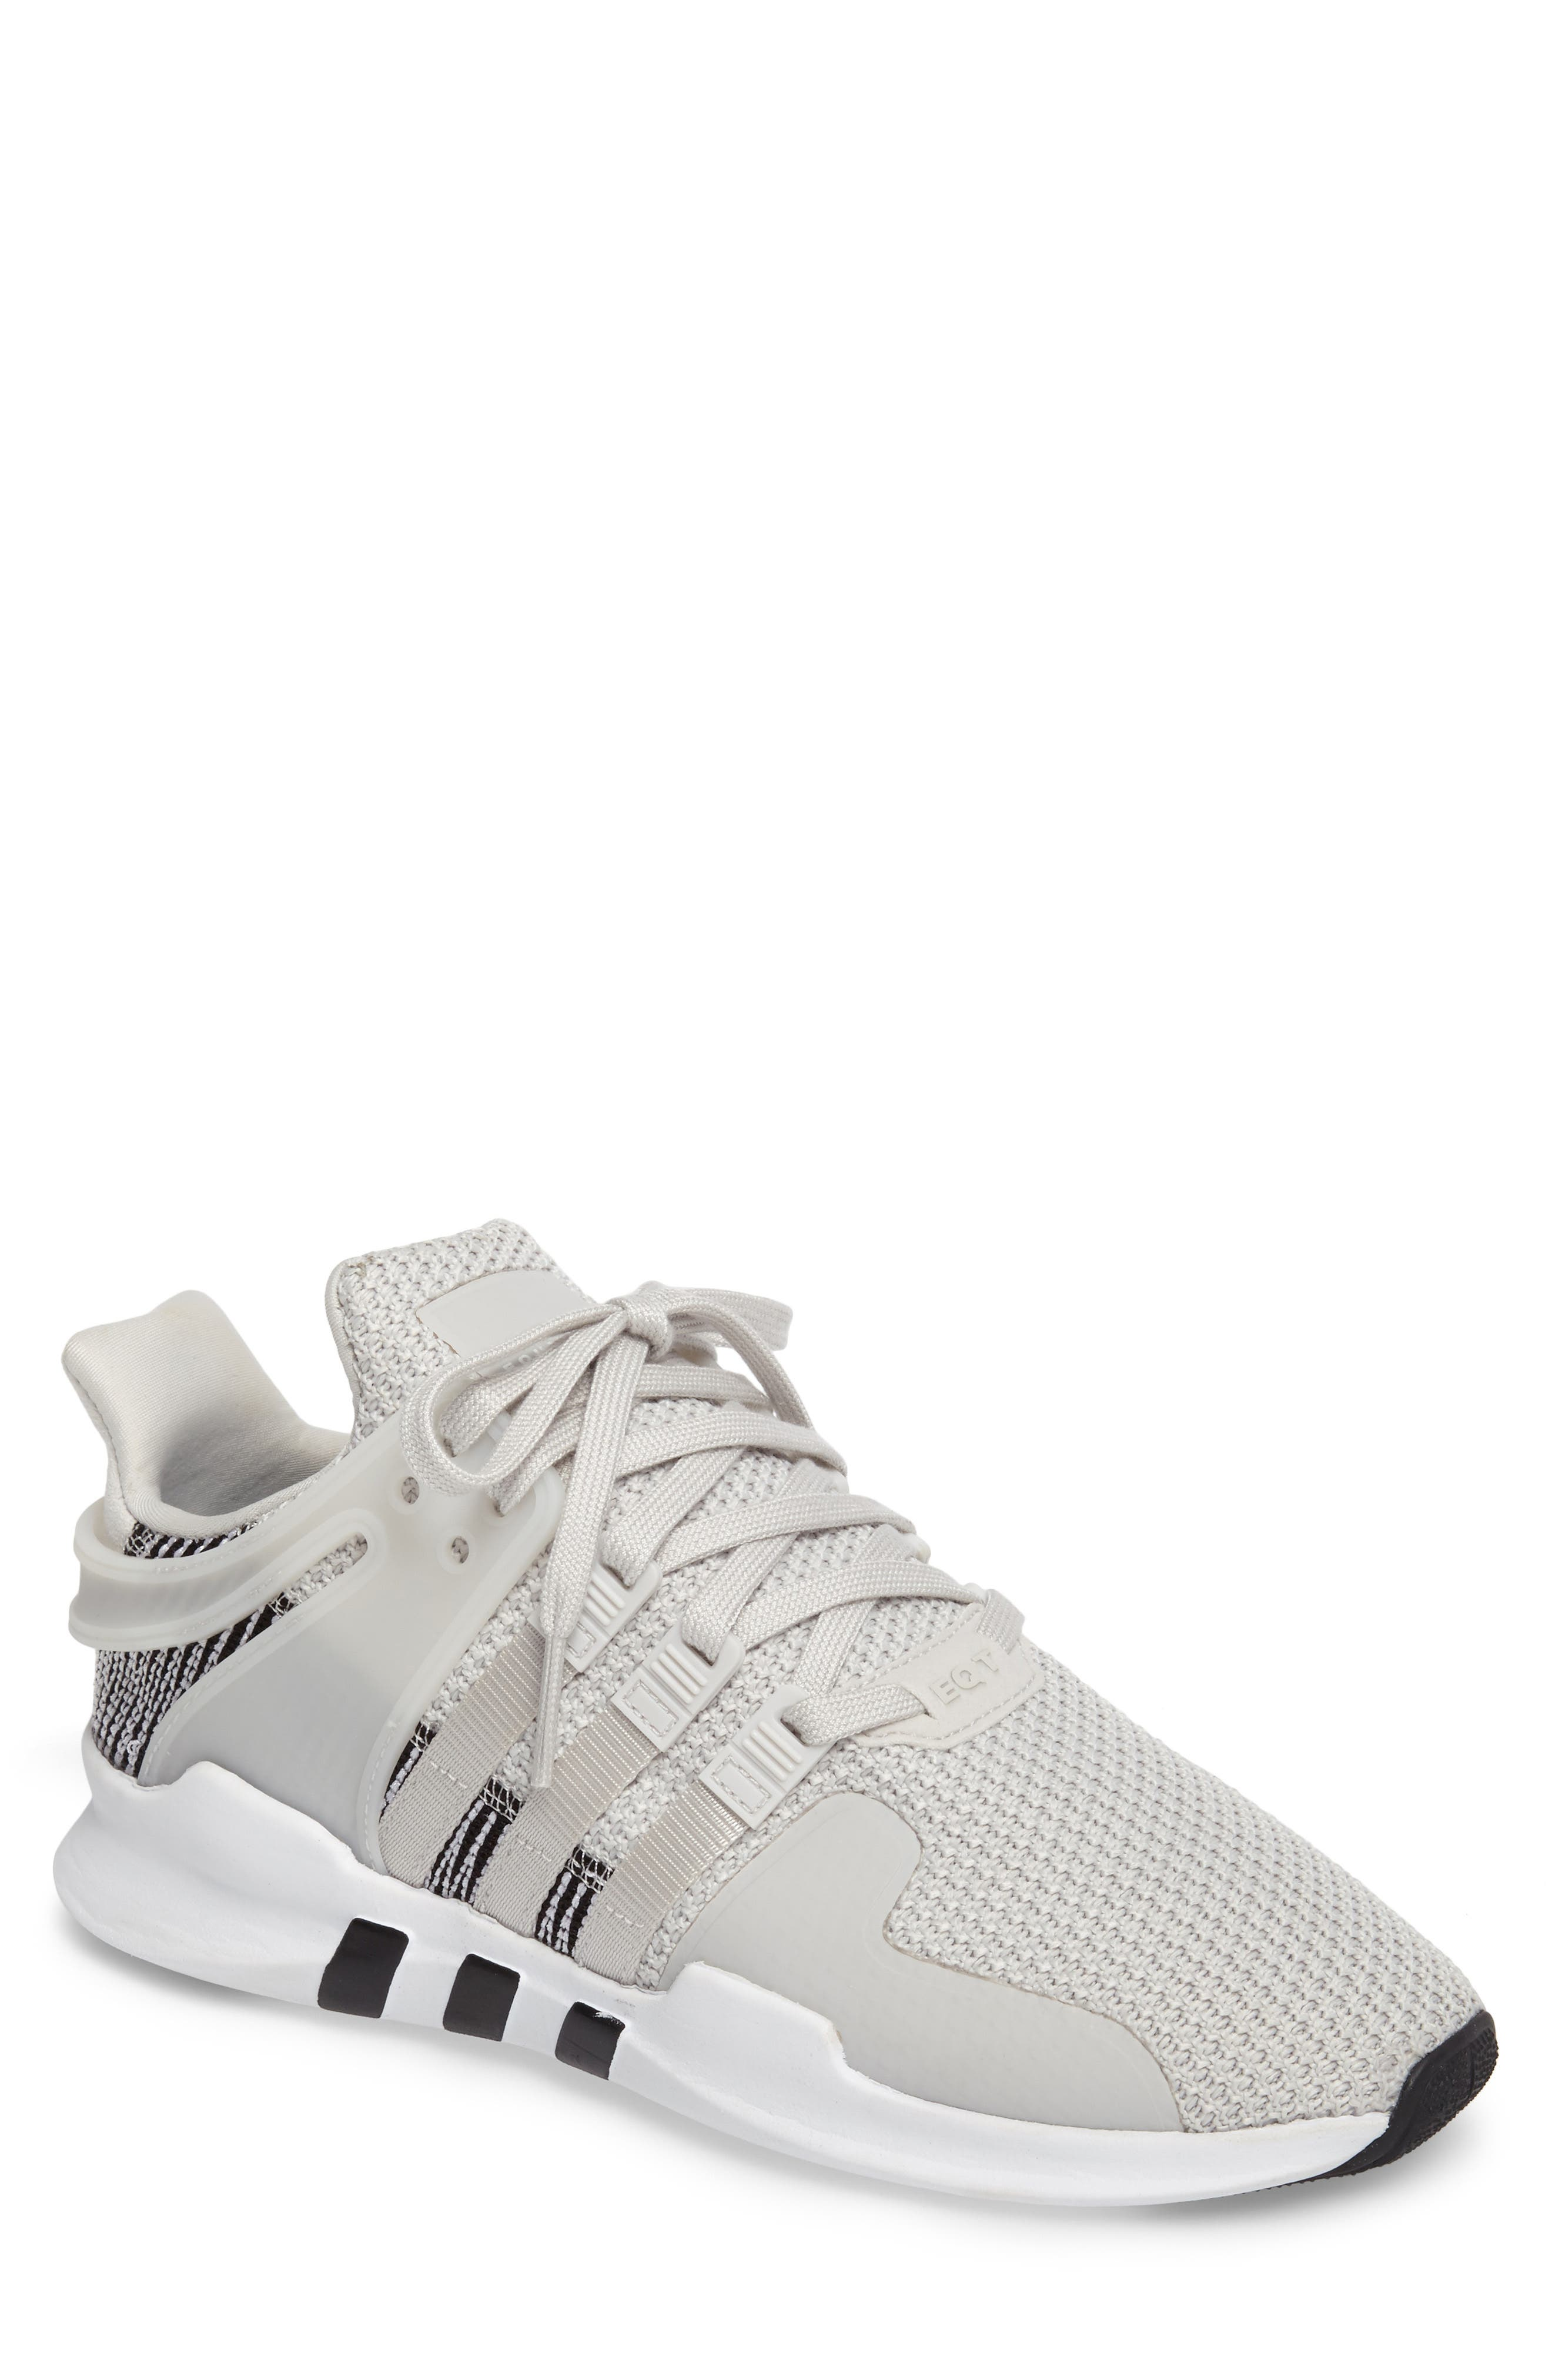 adidas women's black eqt support adv sneakers